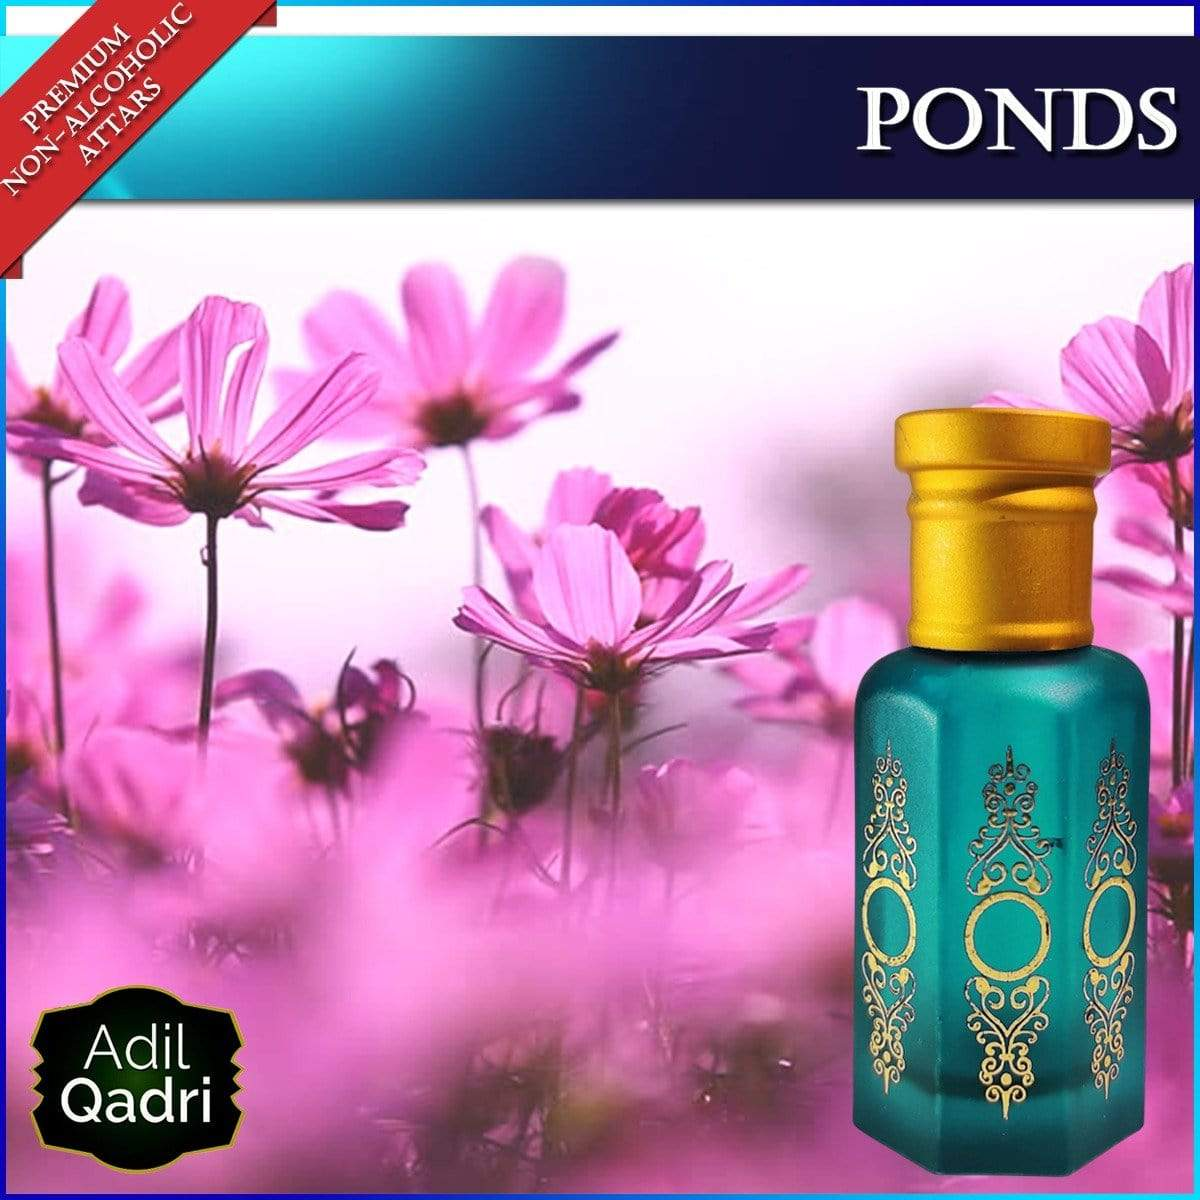 Adilqadri PONDS long lasting and very Addictive Premium Quality Synthetic Attar